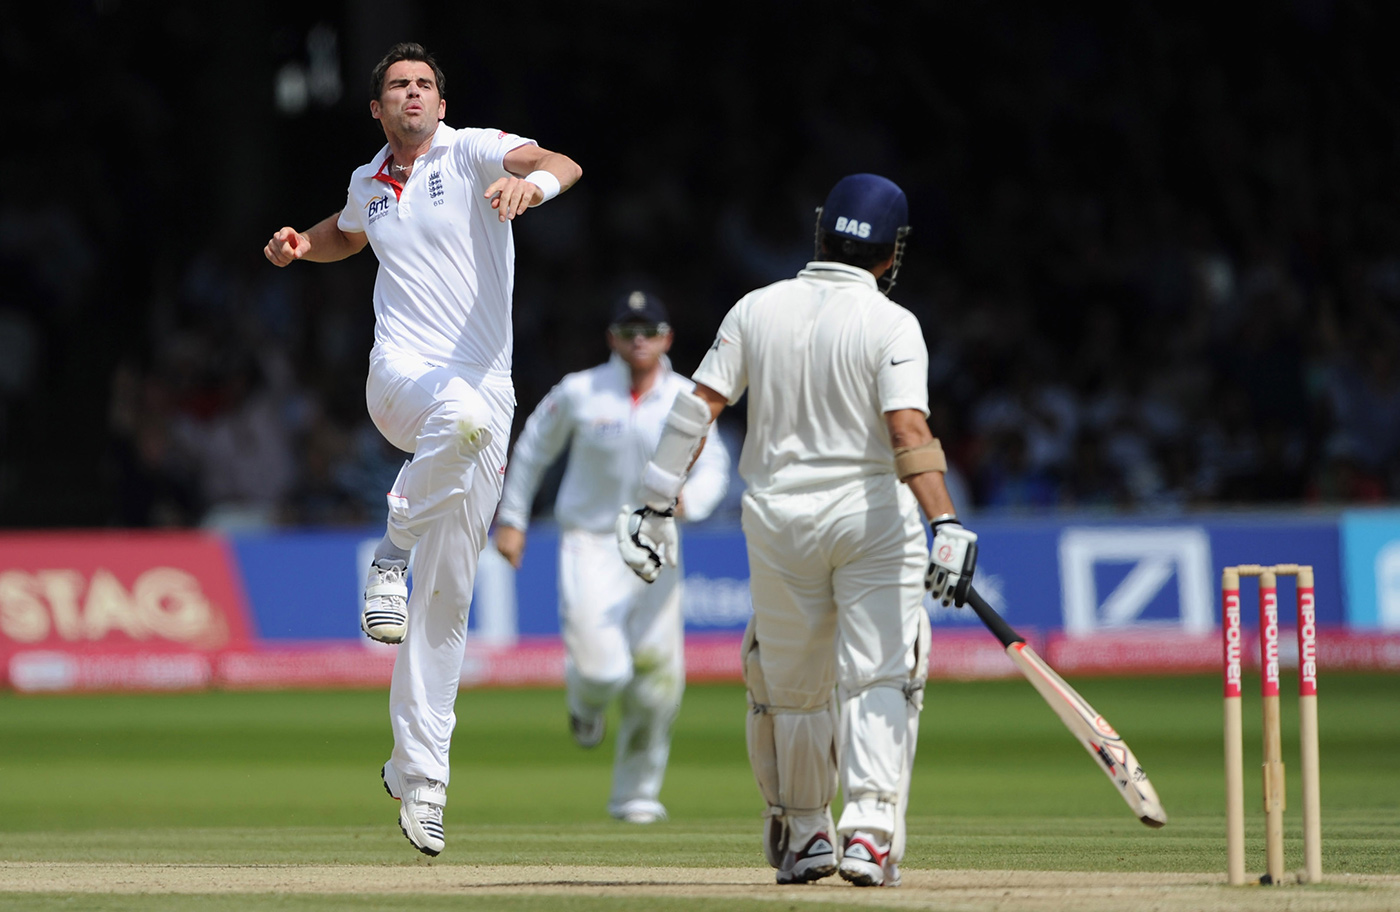 You're no legend to me: Anderson gets Tendulkar in the course of his 5 for 65 at Lord's in 2011